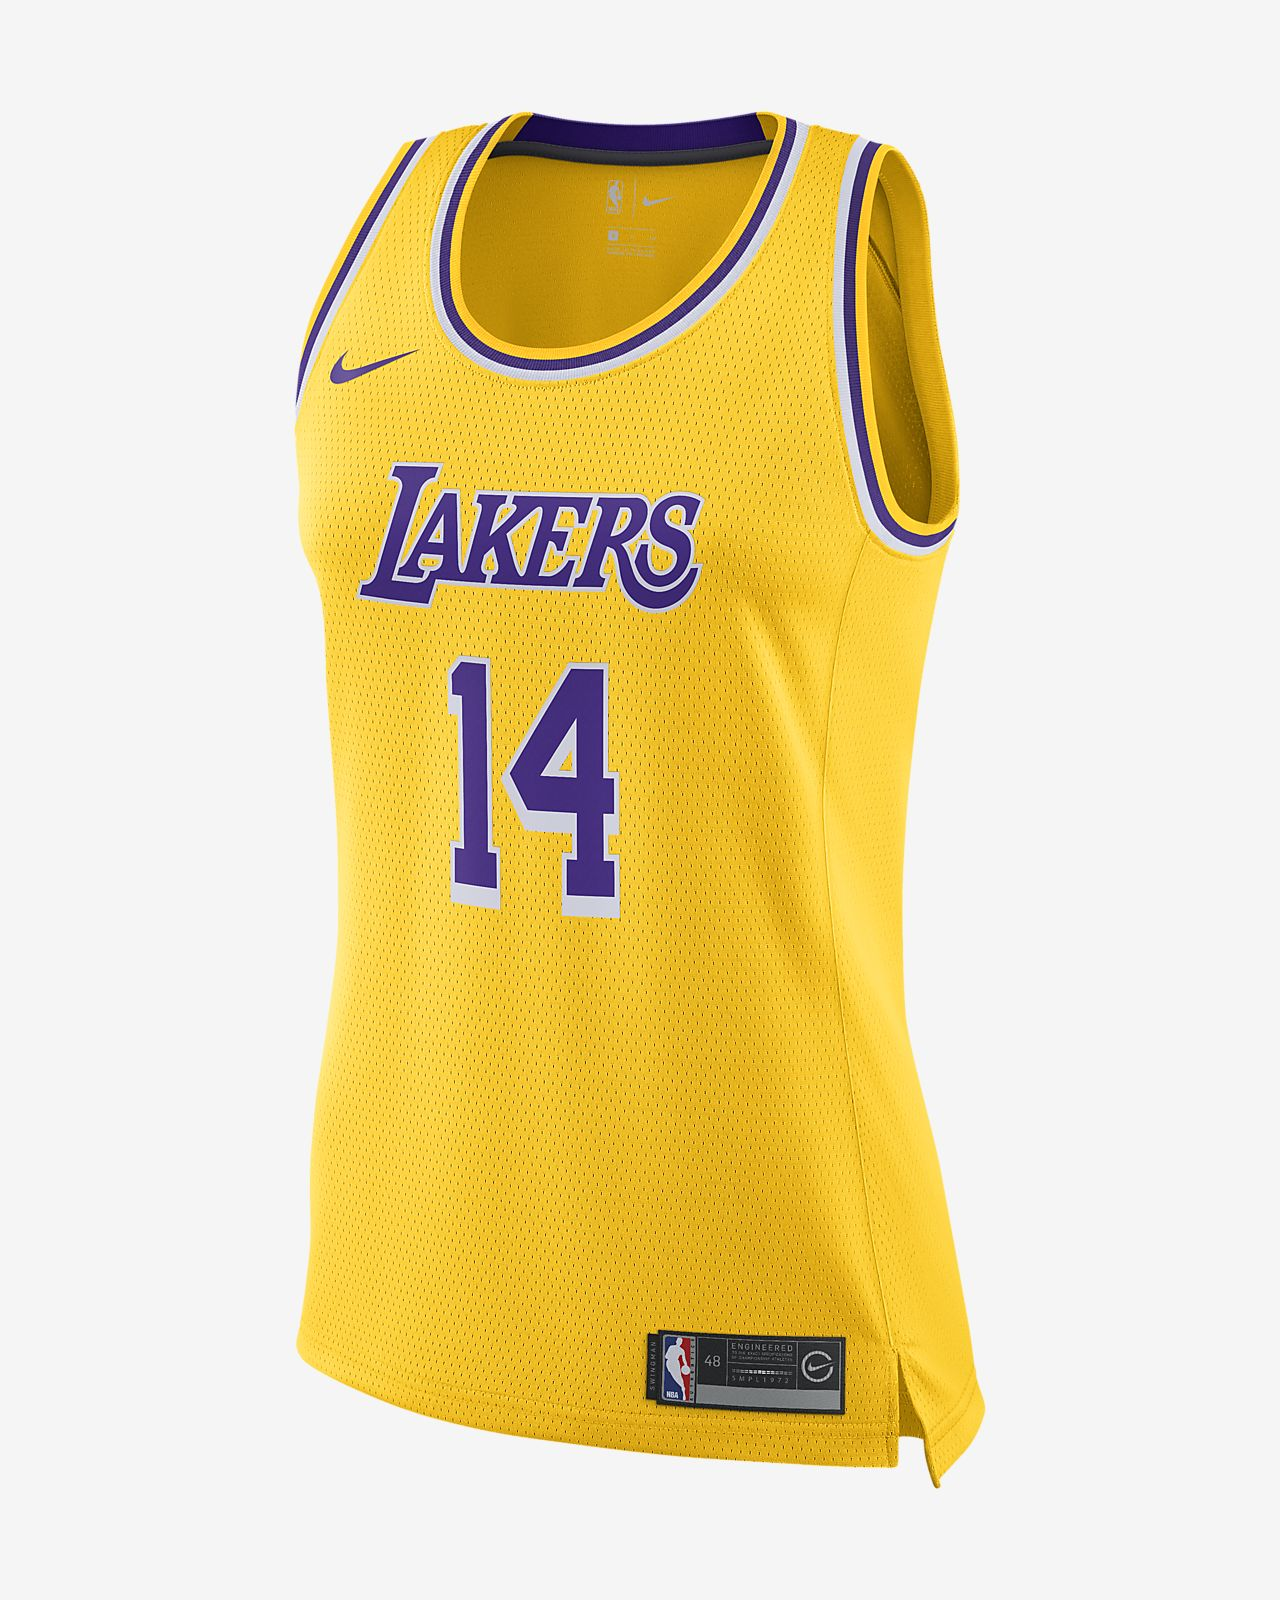 1d15c45cb4e Women s Nike NBA Connected Jersey. Brandon Ingram Icon Edition Swingman (Los  Angeles Lakers)